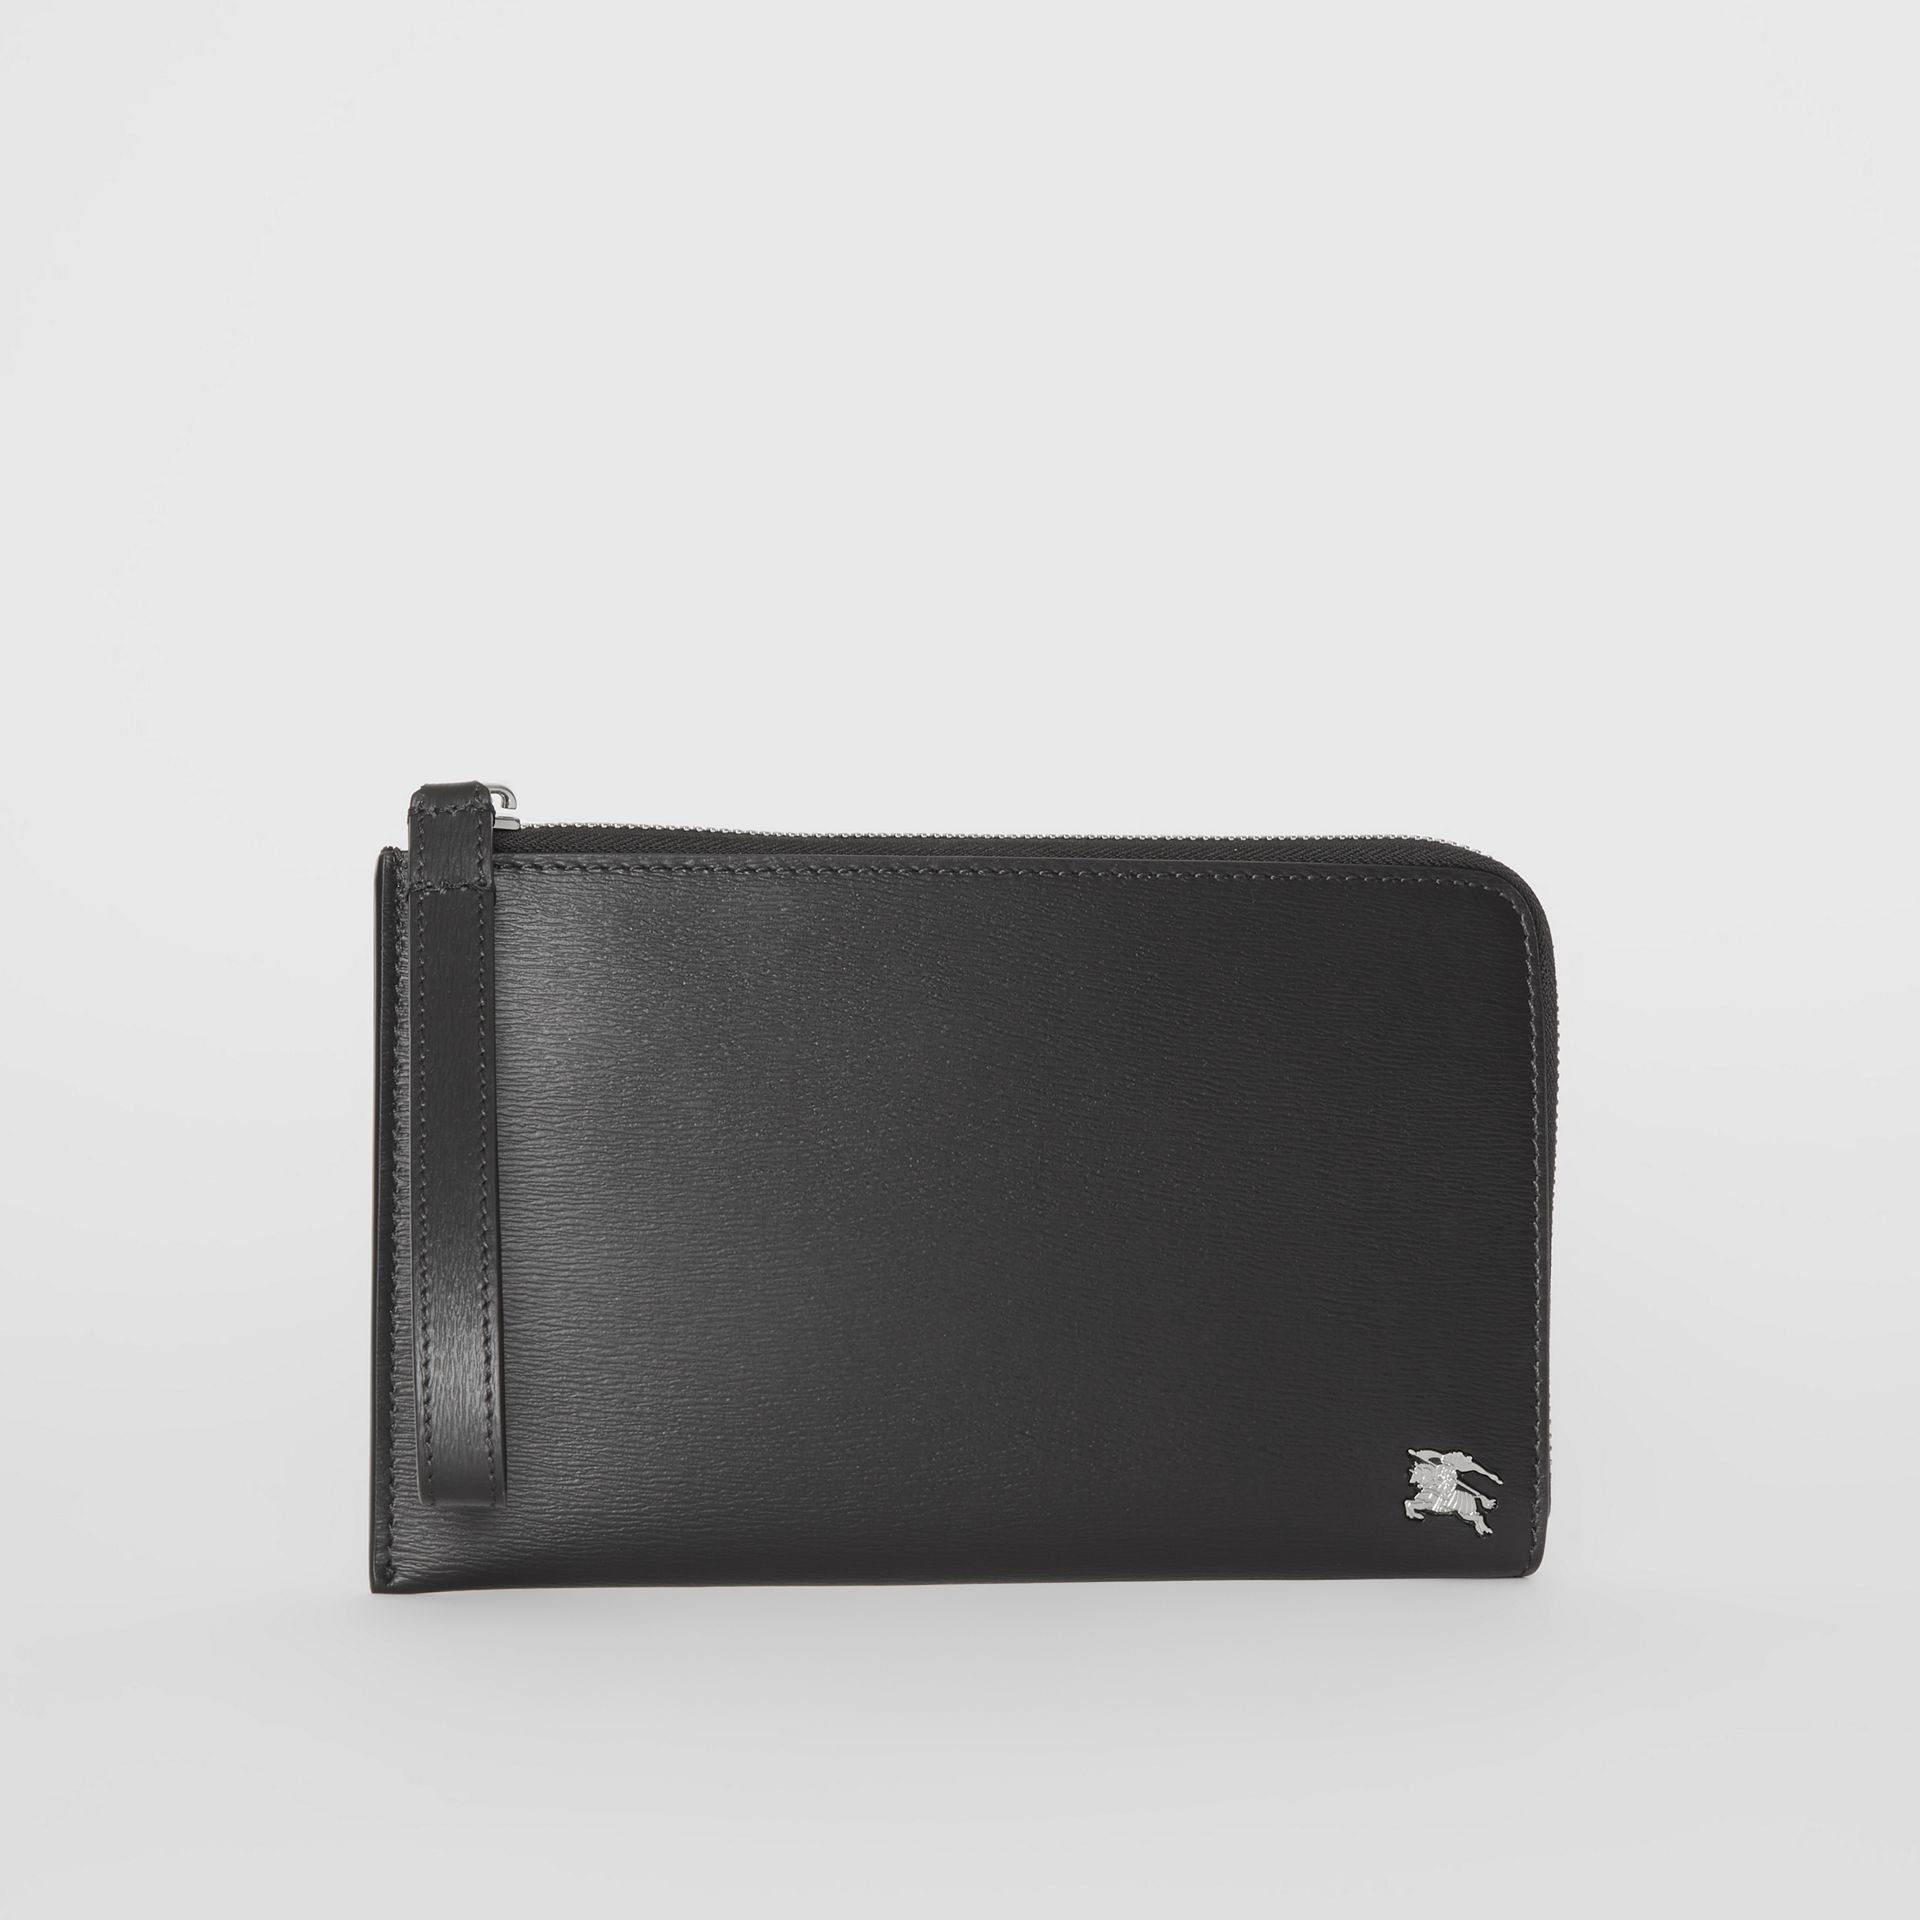 London Leather Travel Wallet in Black - Men | Burberry - gallery image 7